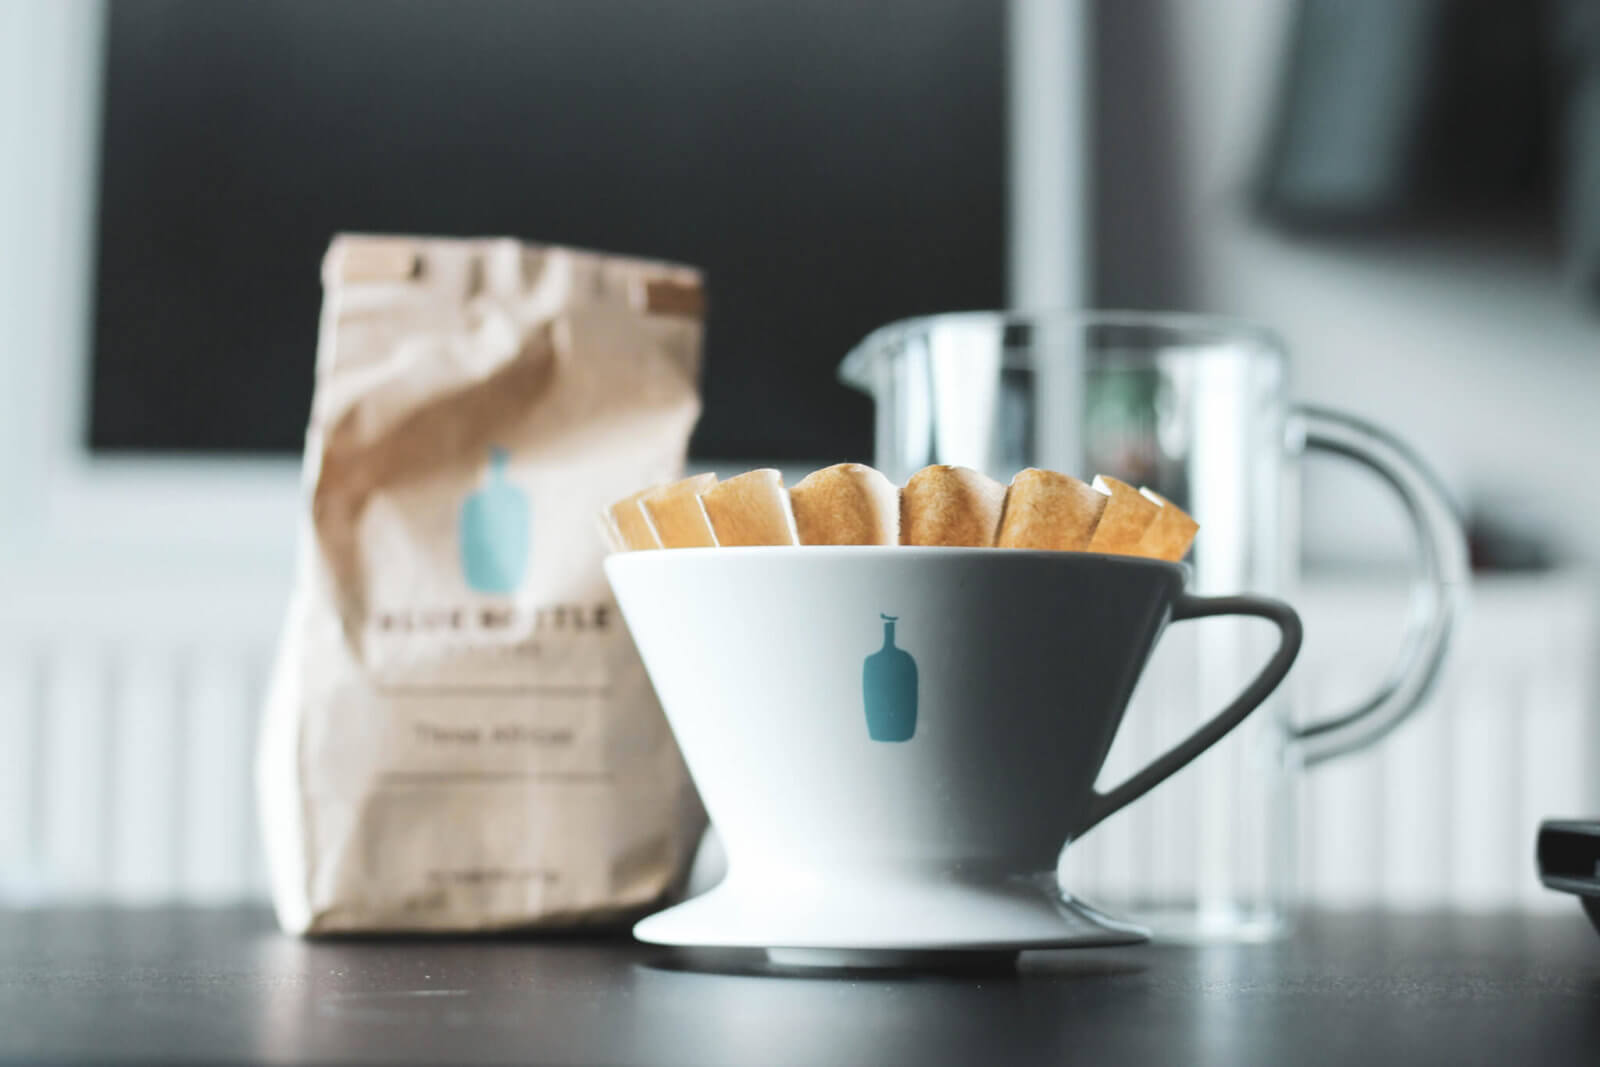 Blue Bottle Coffee used Spree to turn one coffee shop into a $700 million subscription e-commerce business